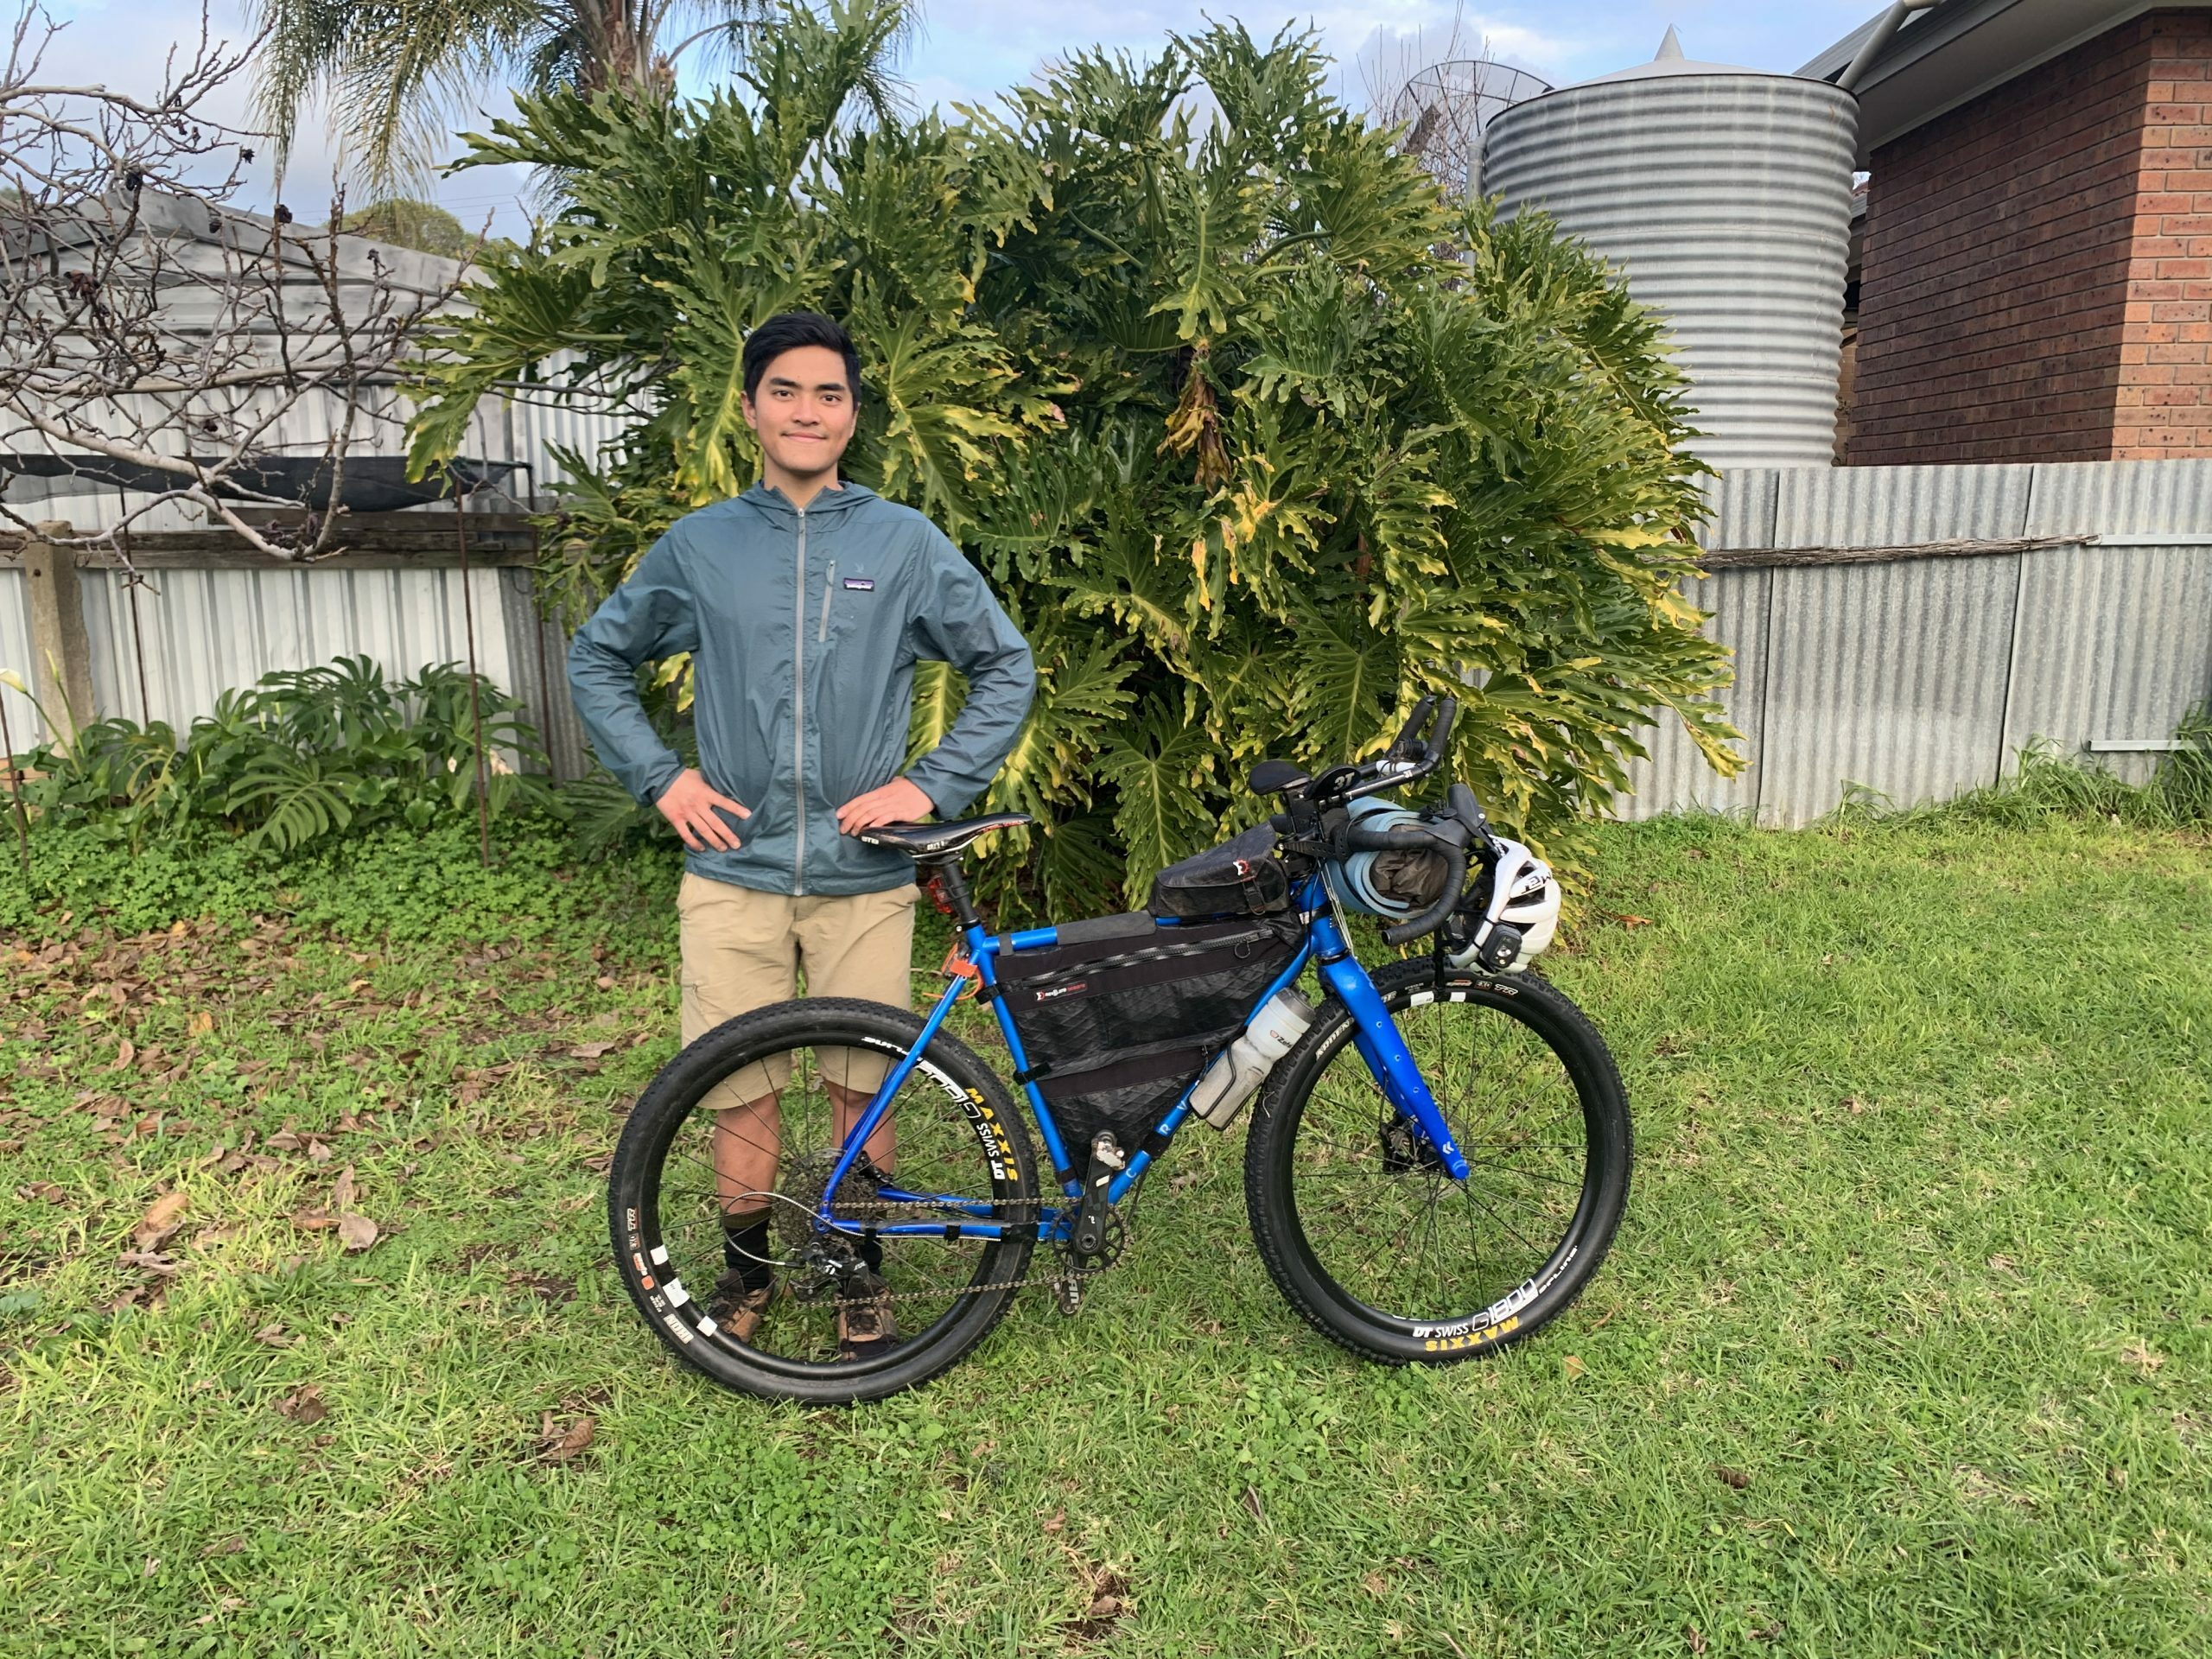 Farhan and his Curve bikepacking bike before the Kudlila Rally TT attempt